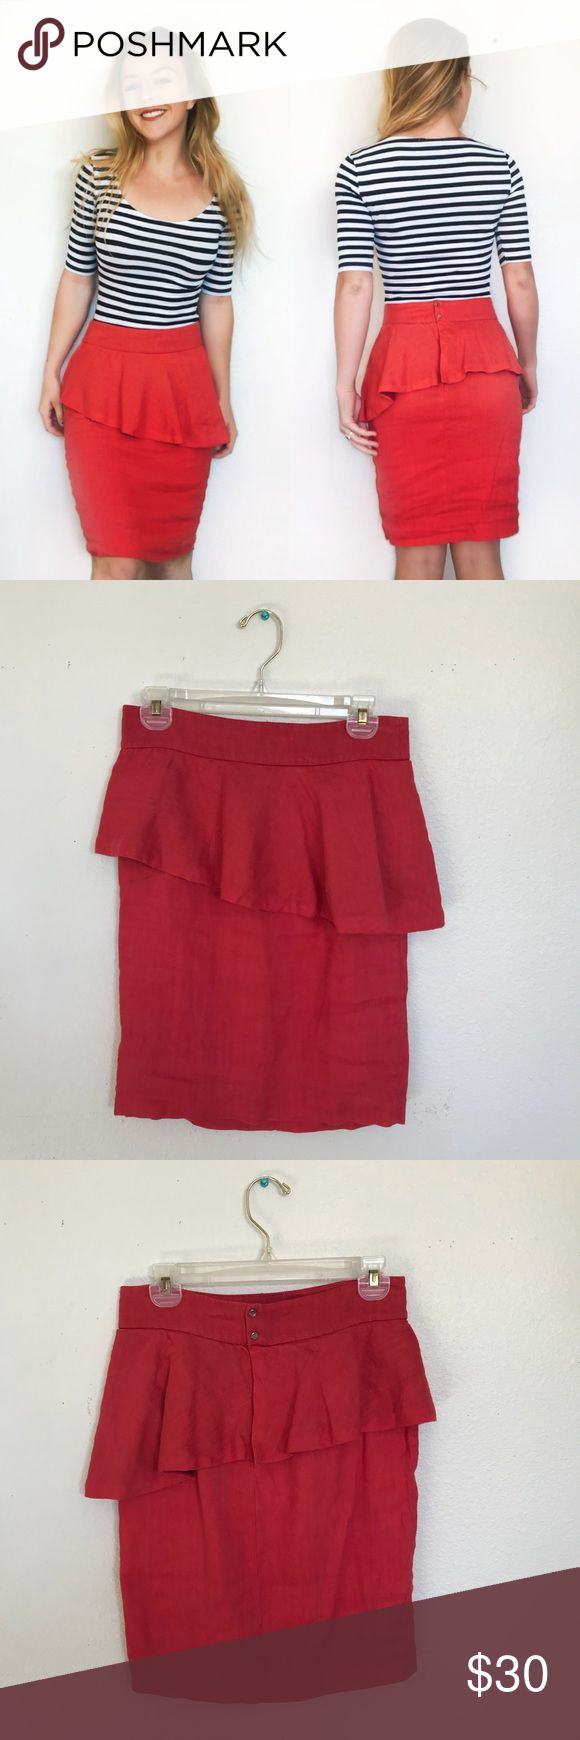 Zara skirt This skirt is all romance! Its the perfect balance of sexy and soft with the bodycon silhouette and flowy peplum at the top. Peep the lovely gold button details on the back!It's in perfect condition! Make an offer❤️🔥 Zara Skirts Pencil